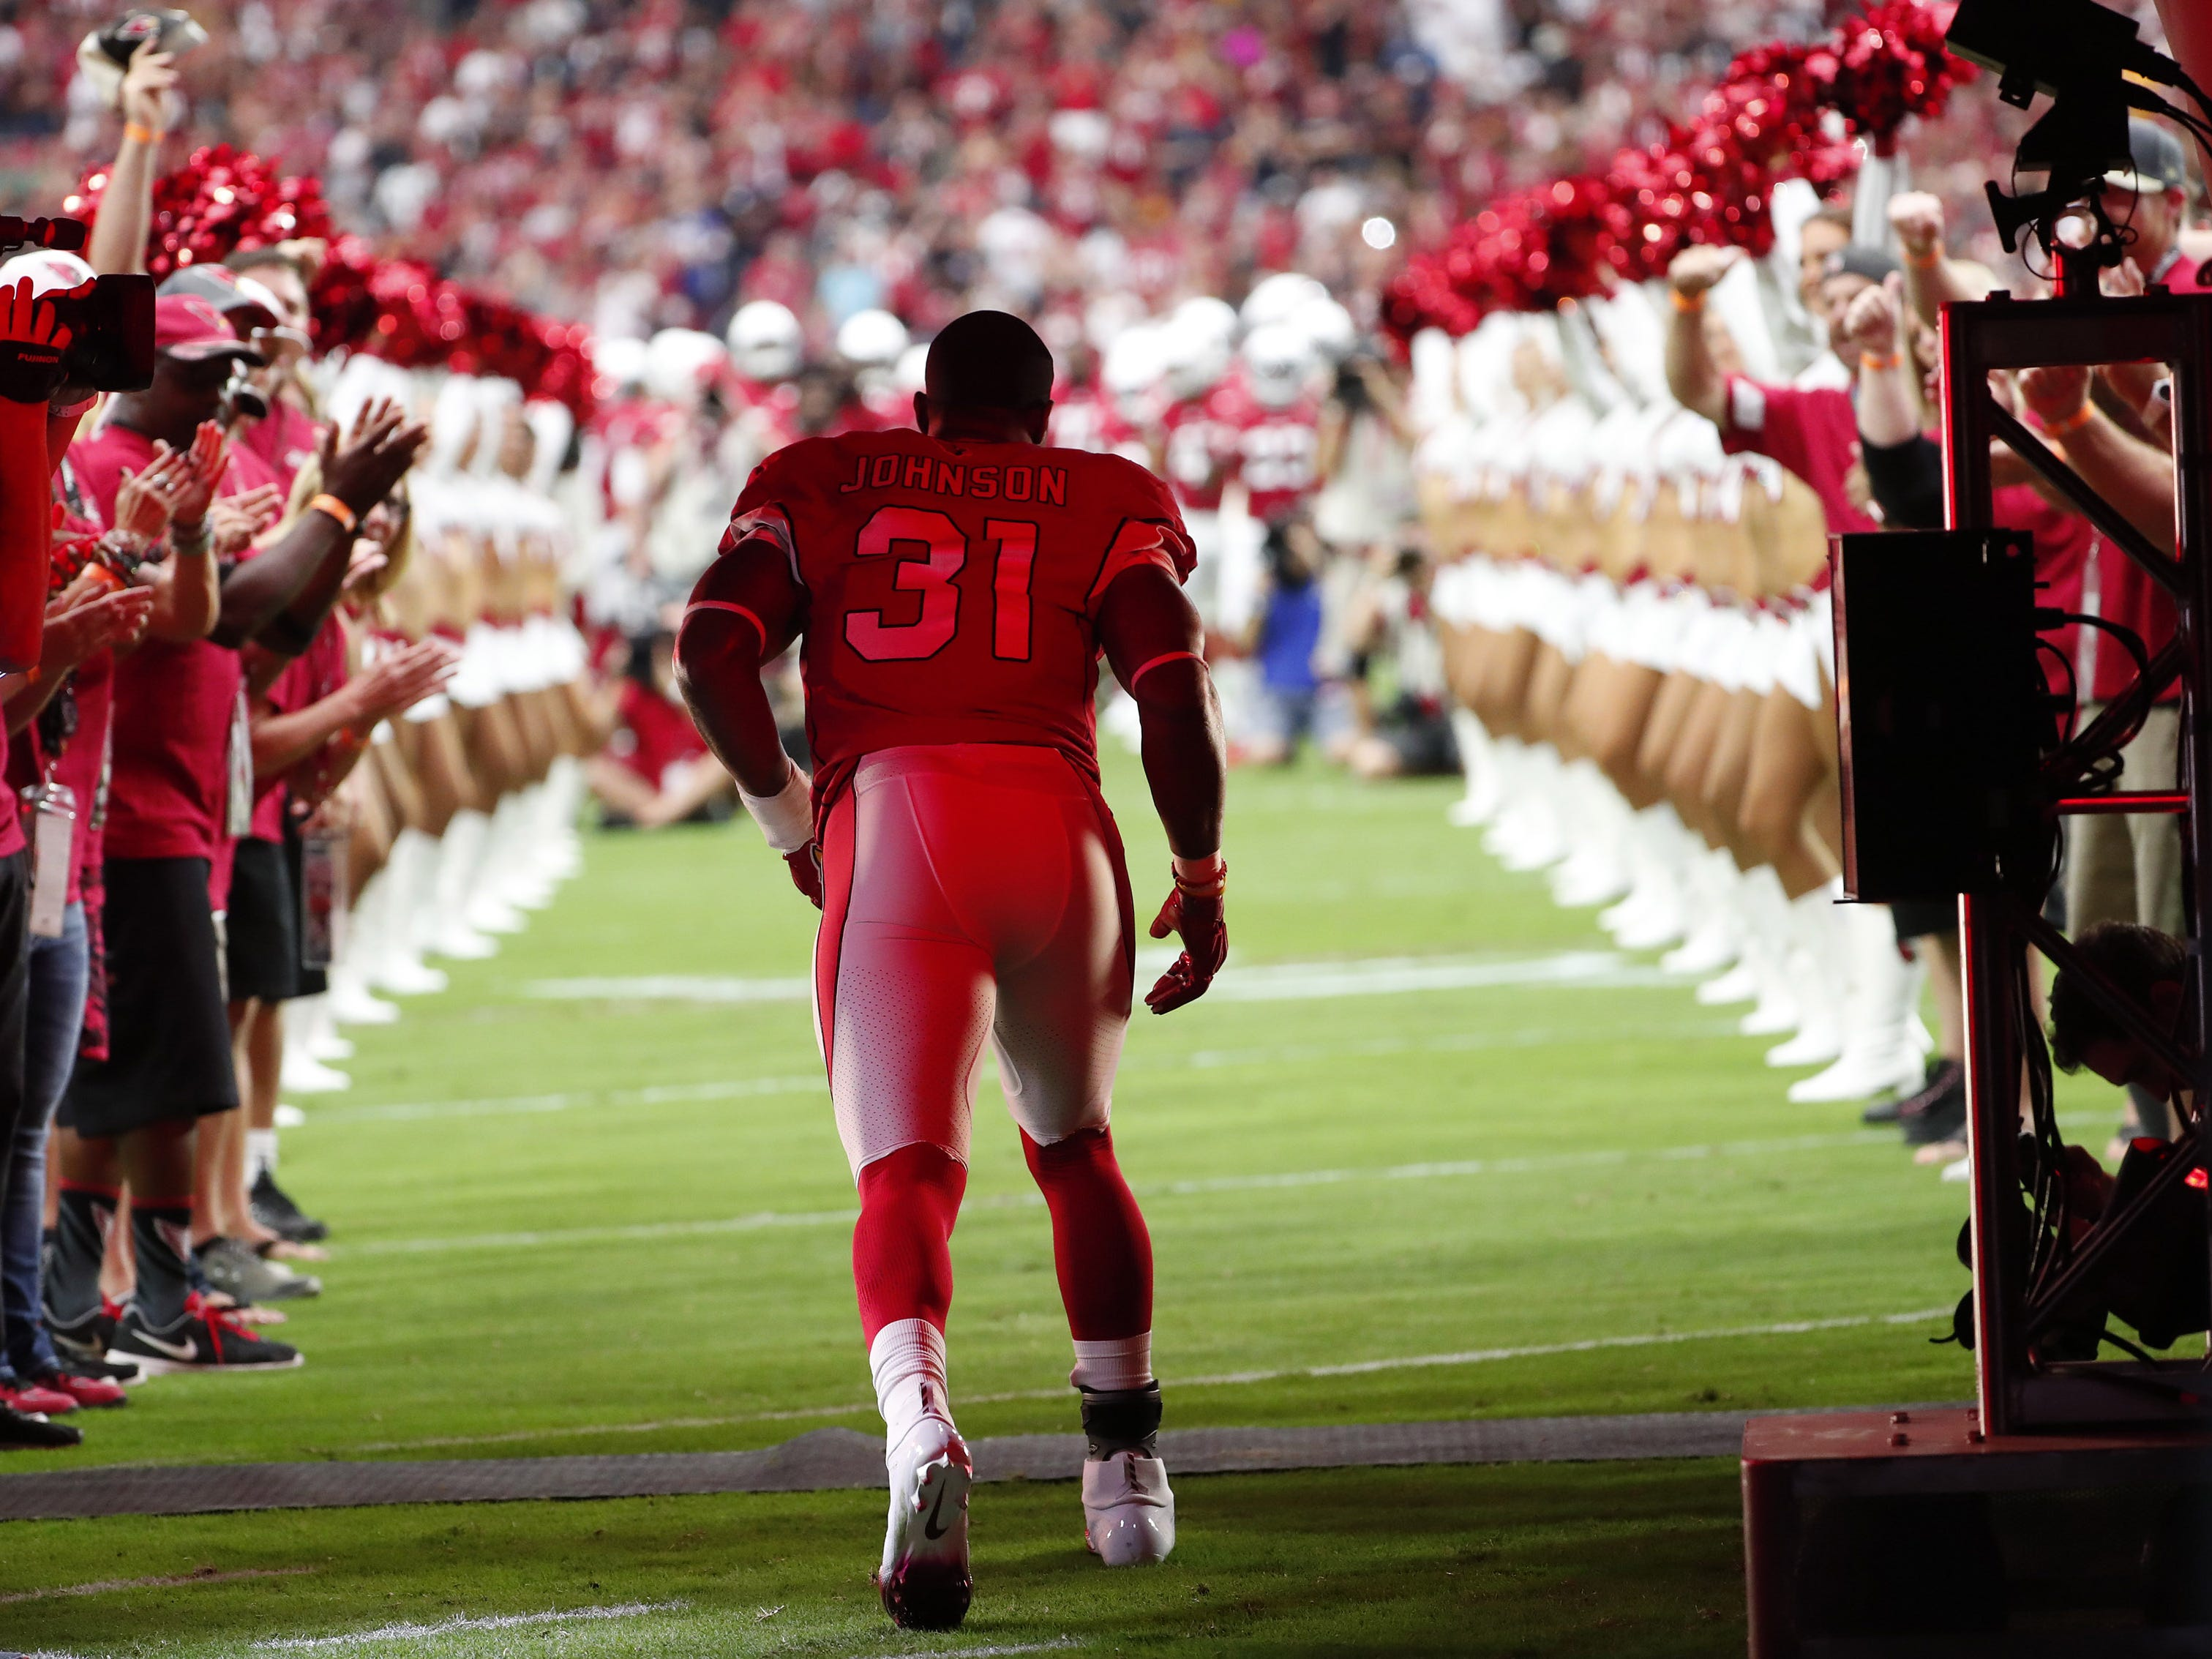 Arizona Cardinals running back David Johnson (31) is introduced before playing against the Washington Redskins at State Farm Stadium in Glendale, Ariz. September 9. 2018.